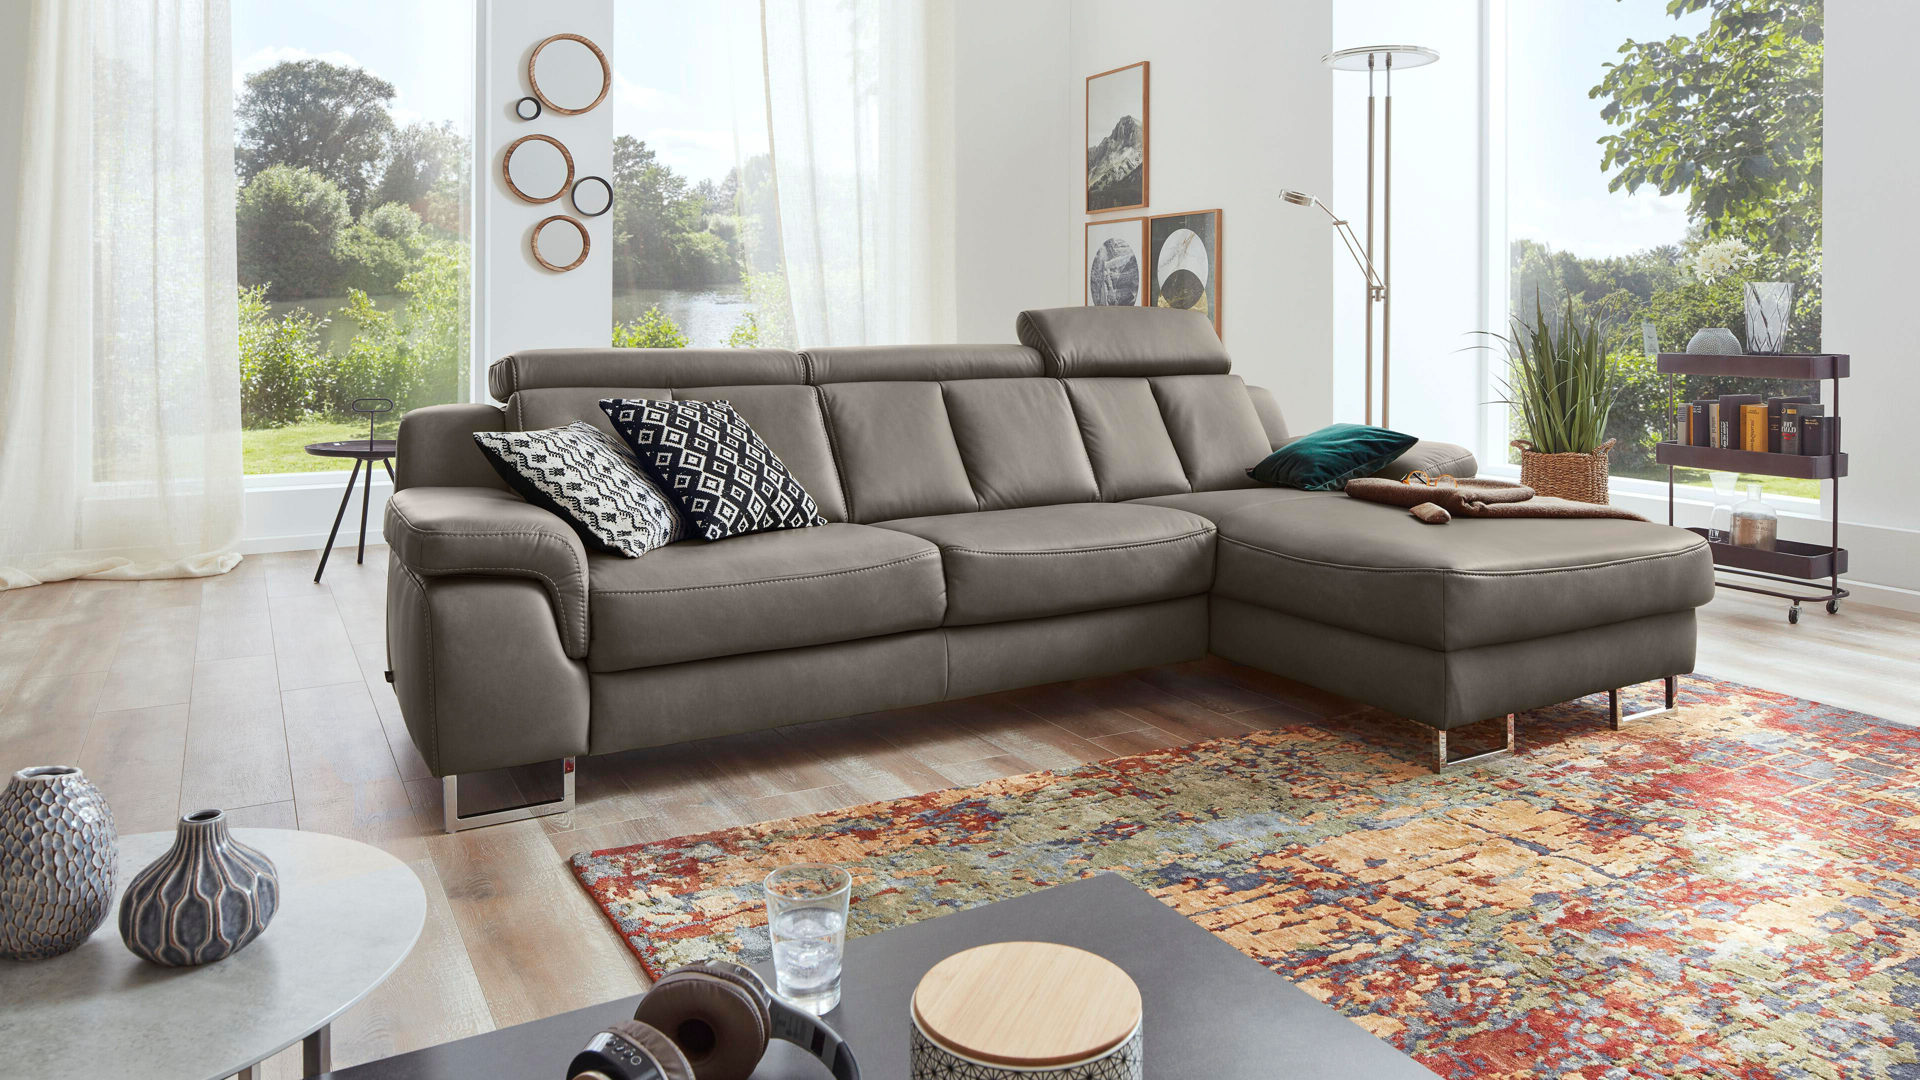 Ecksofa Interliving aus Leder in Grau Interliving Sofa Serie 4050 – Eckkombination rauchgraues LongLife-Leder Cloudy & Chromfüße – Schenkelmaß ca. 289 x 177 cm